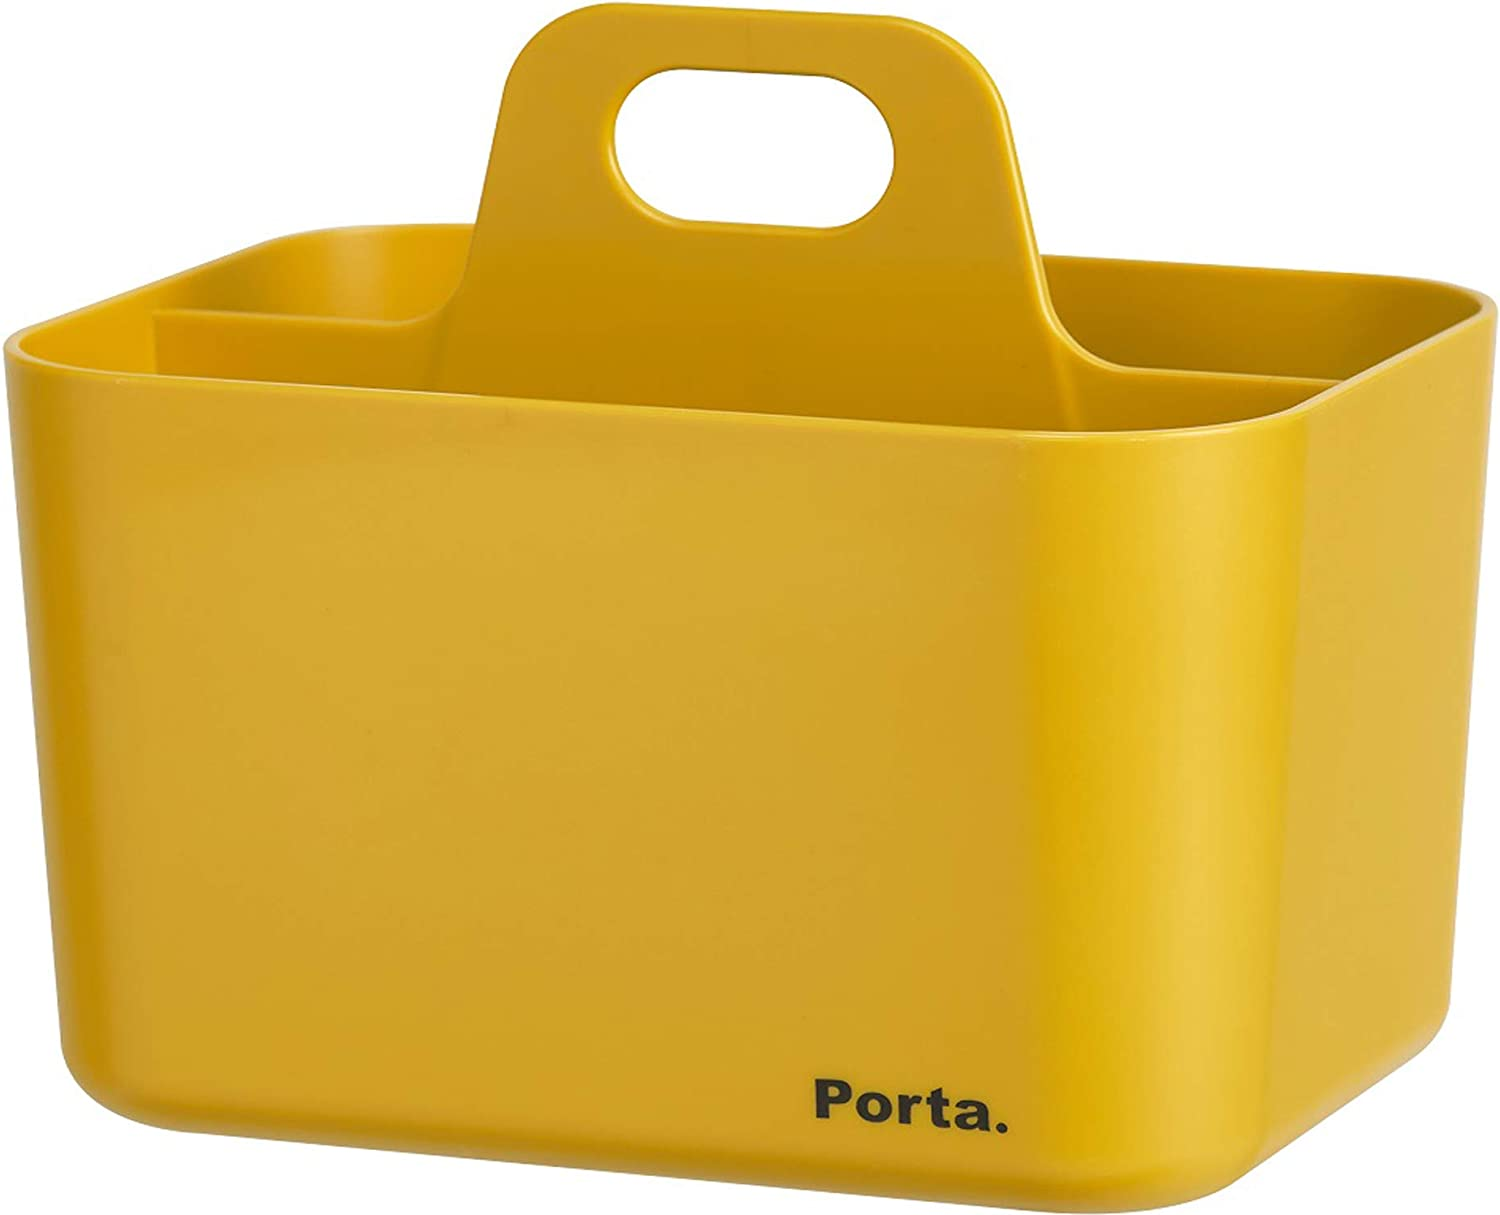 Litem Porta Mini - A Compact & Stackable Storage Unit for organizing Small Objects in Kitchen, Office, Kids Room (Yellow, 5.9Wx4.3Dx5.3H)